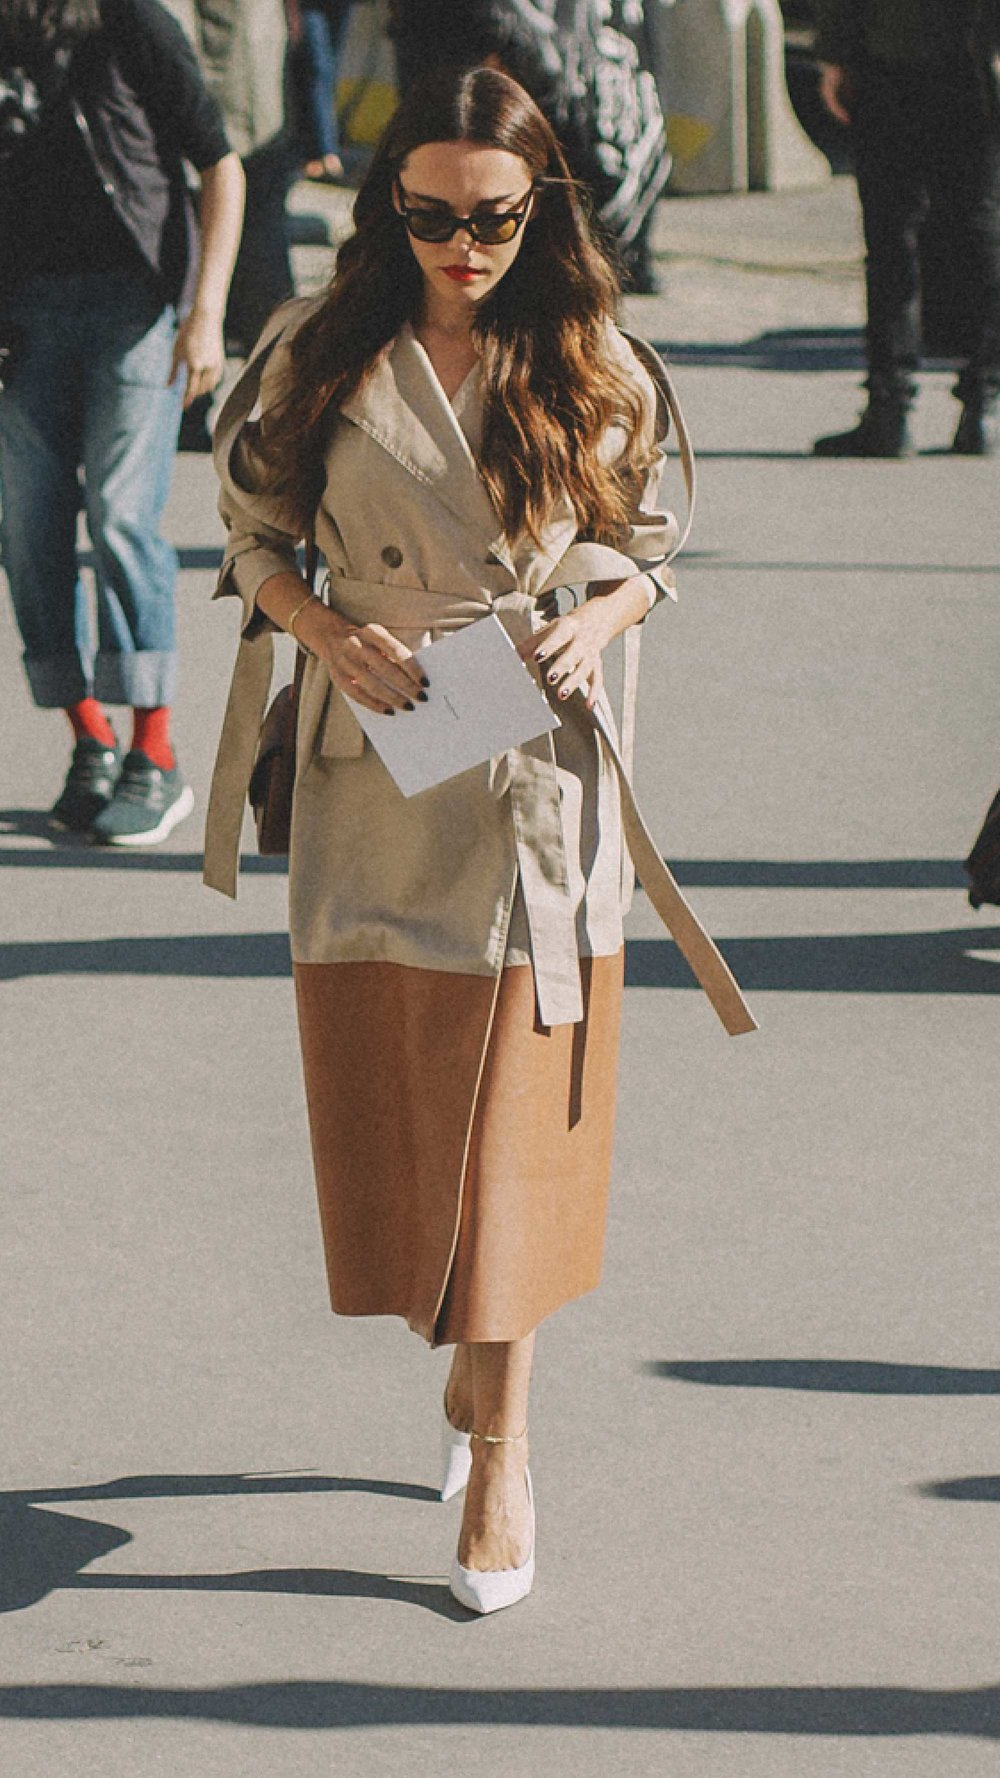 Paris-fashion-street-style-outfits-week-day-three-ss19-11.jpg